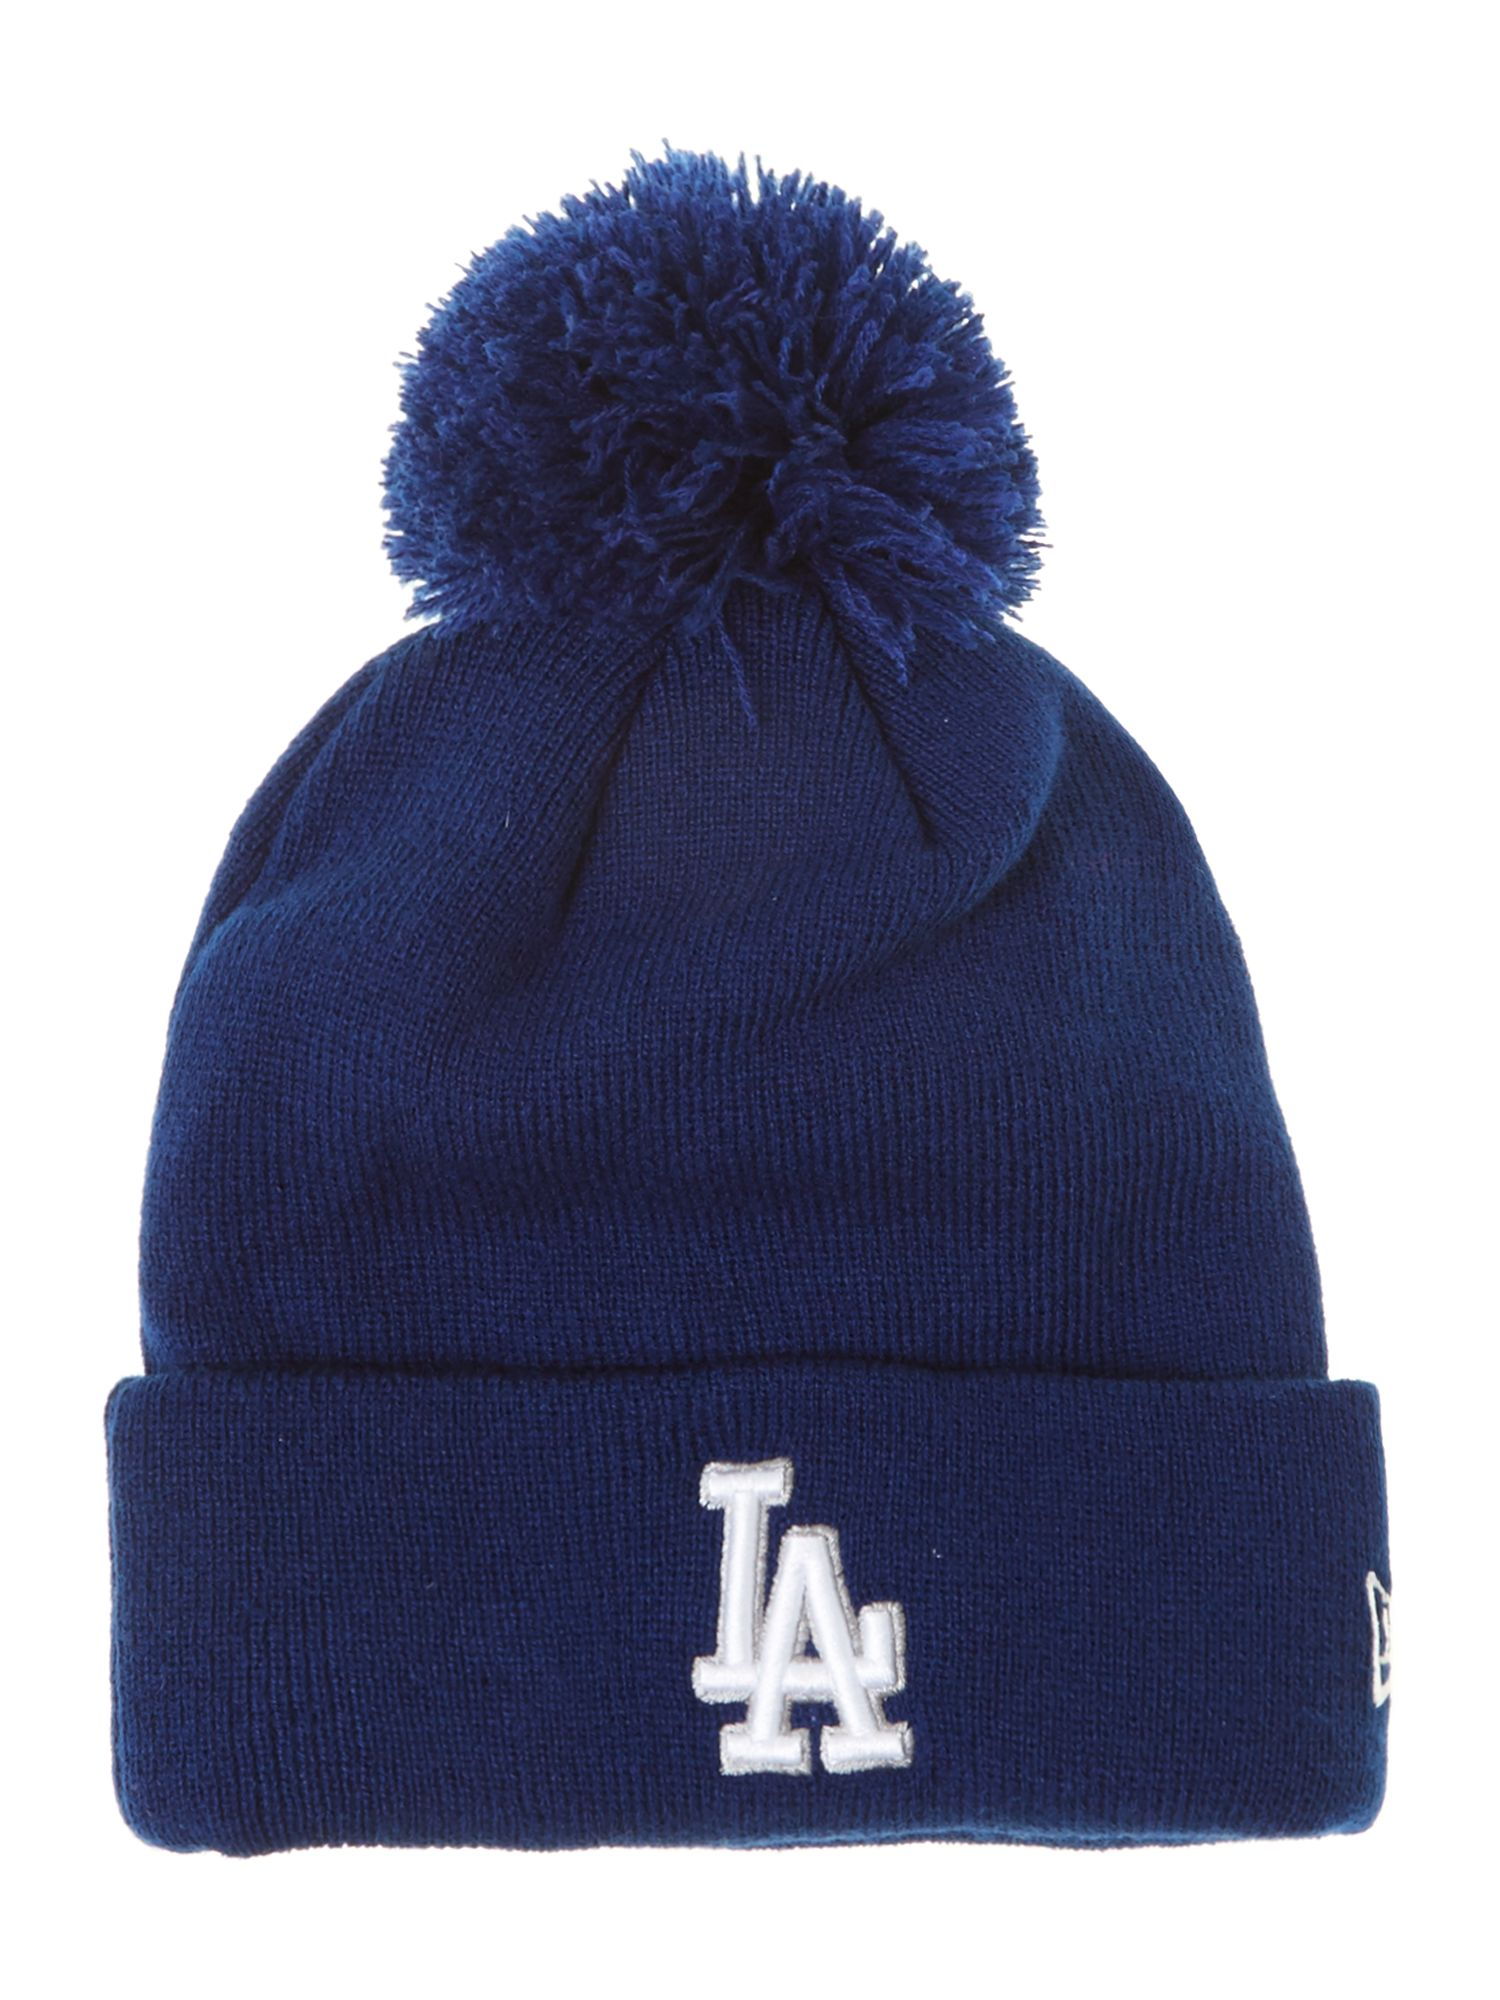 Youth LA knit bobble hat